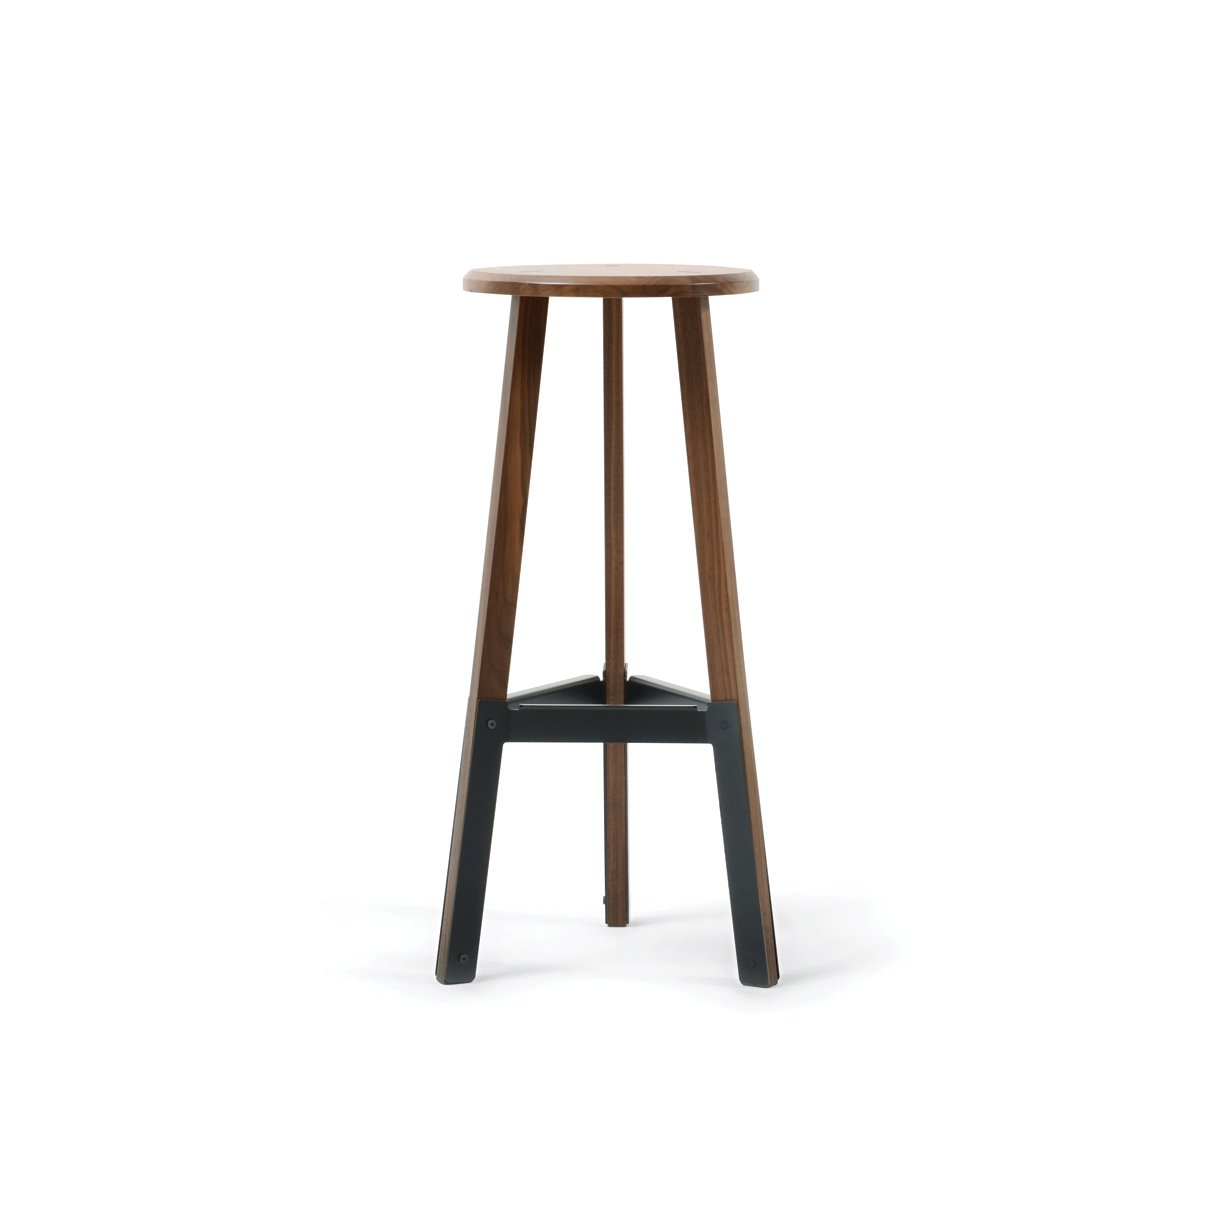 #seatingdesign #seating #chair #stool #furniture #design #mortise #tenon #recycled #eco #green #Milwaukee #madeinUSA #modern #classic #walnut #PoetStool #Misewell